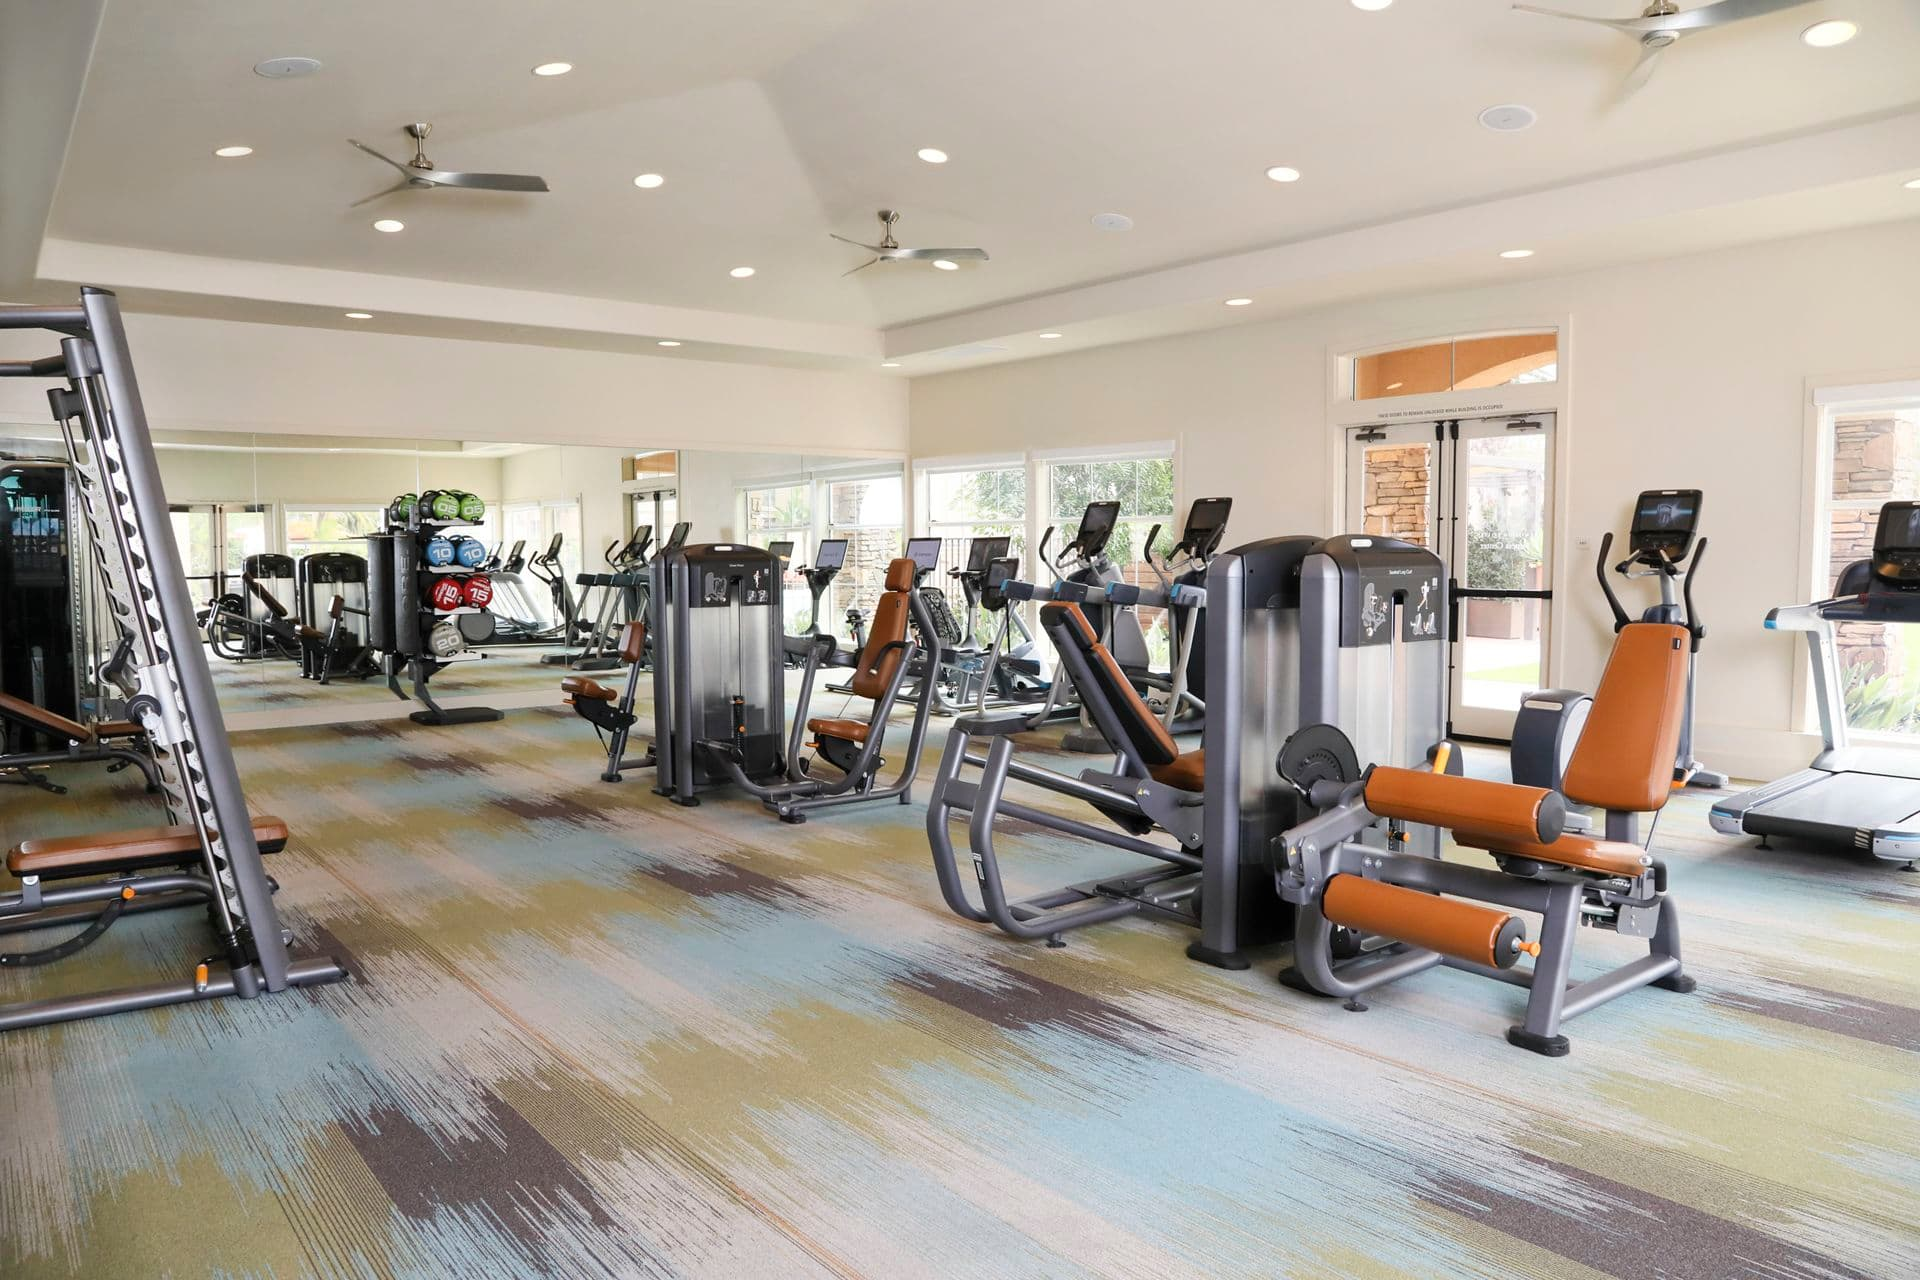 Interior view of fitness center at Del Rio Apartment Homes in Mission Valley, CA.